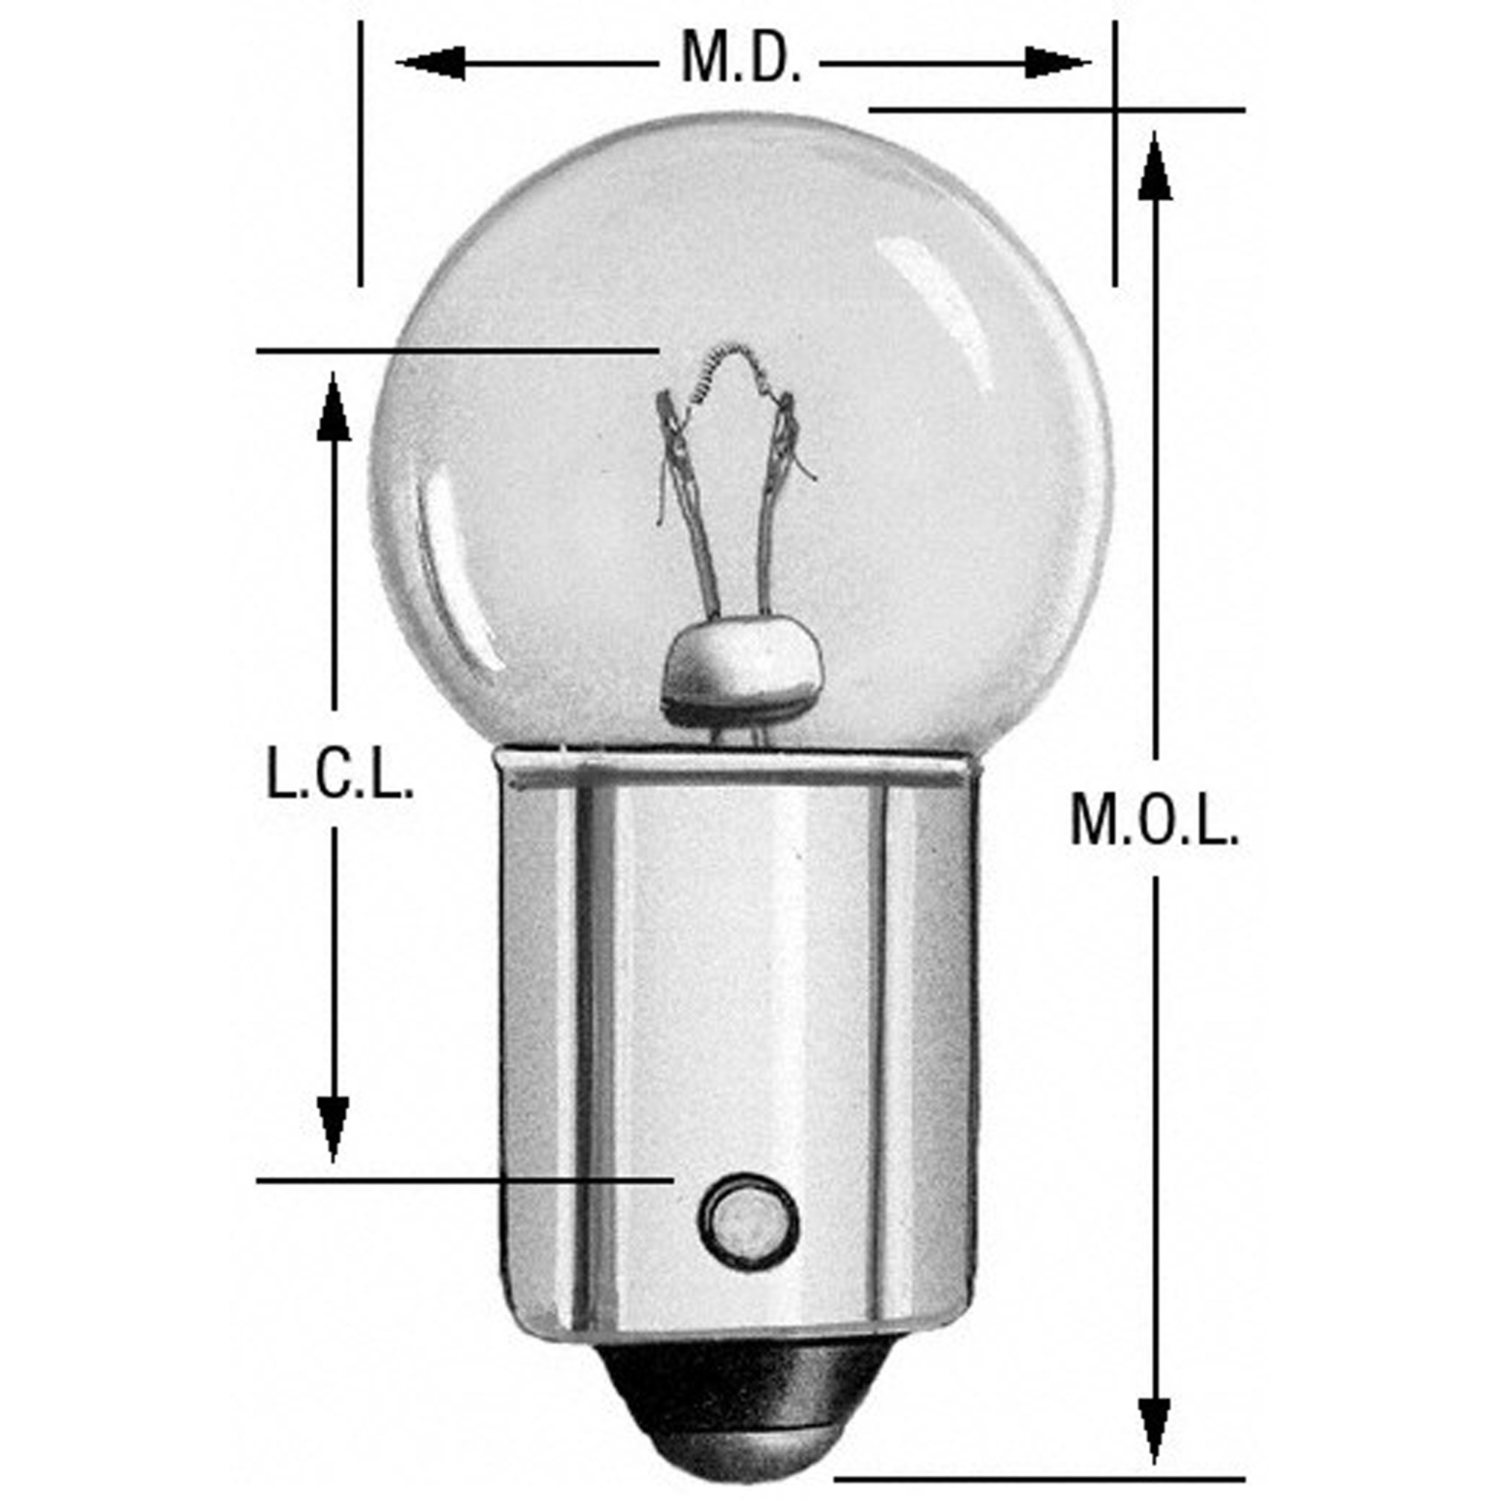 WAGNER LIGHTING - Ash Tray Light Bulb - WLP 57